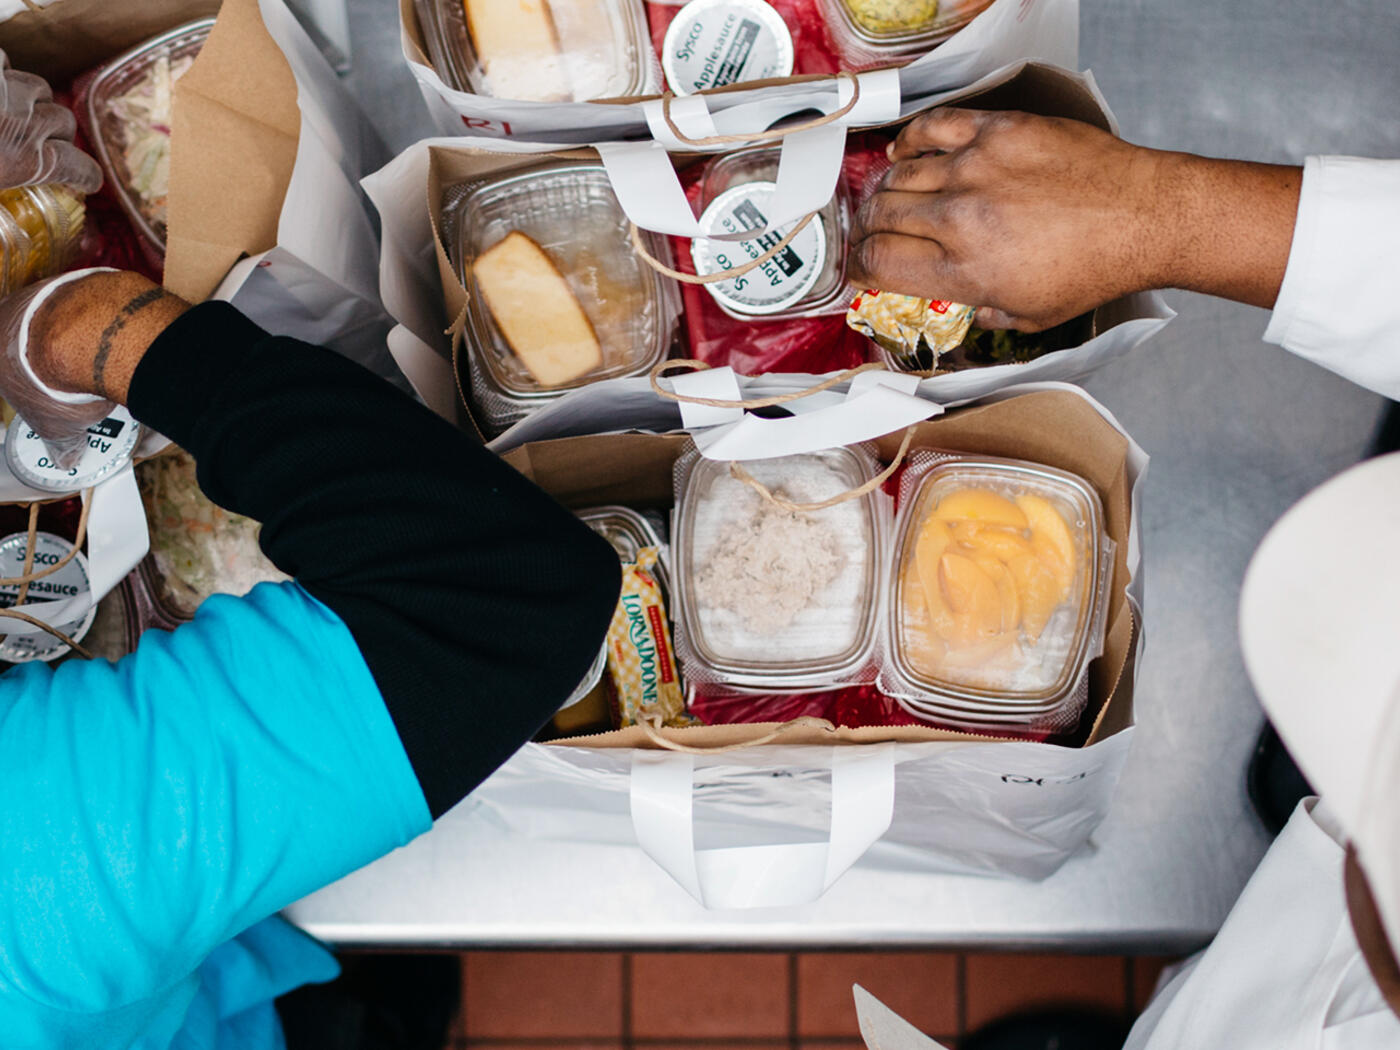 How a nonprofit meals provider will triple the people it serves